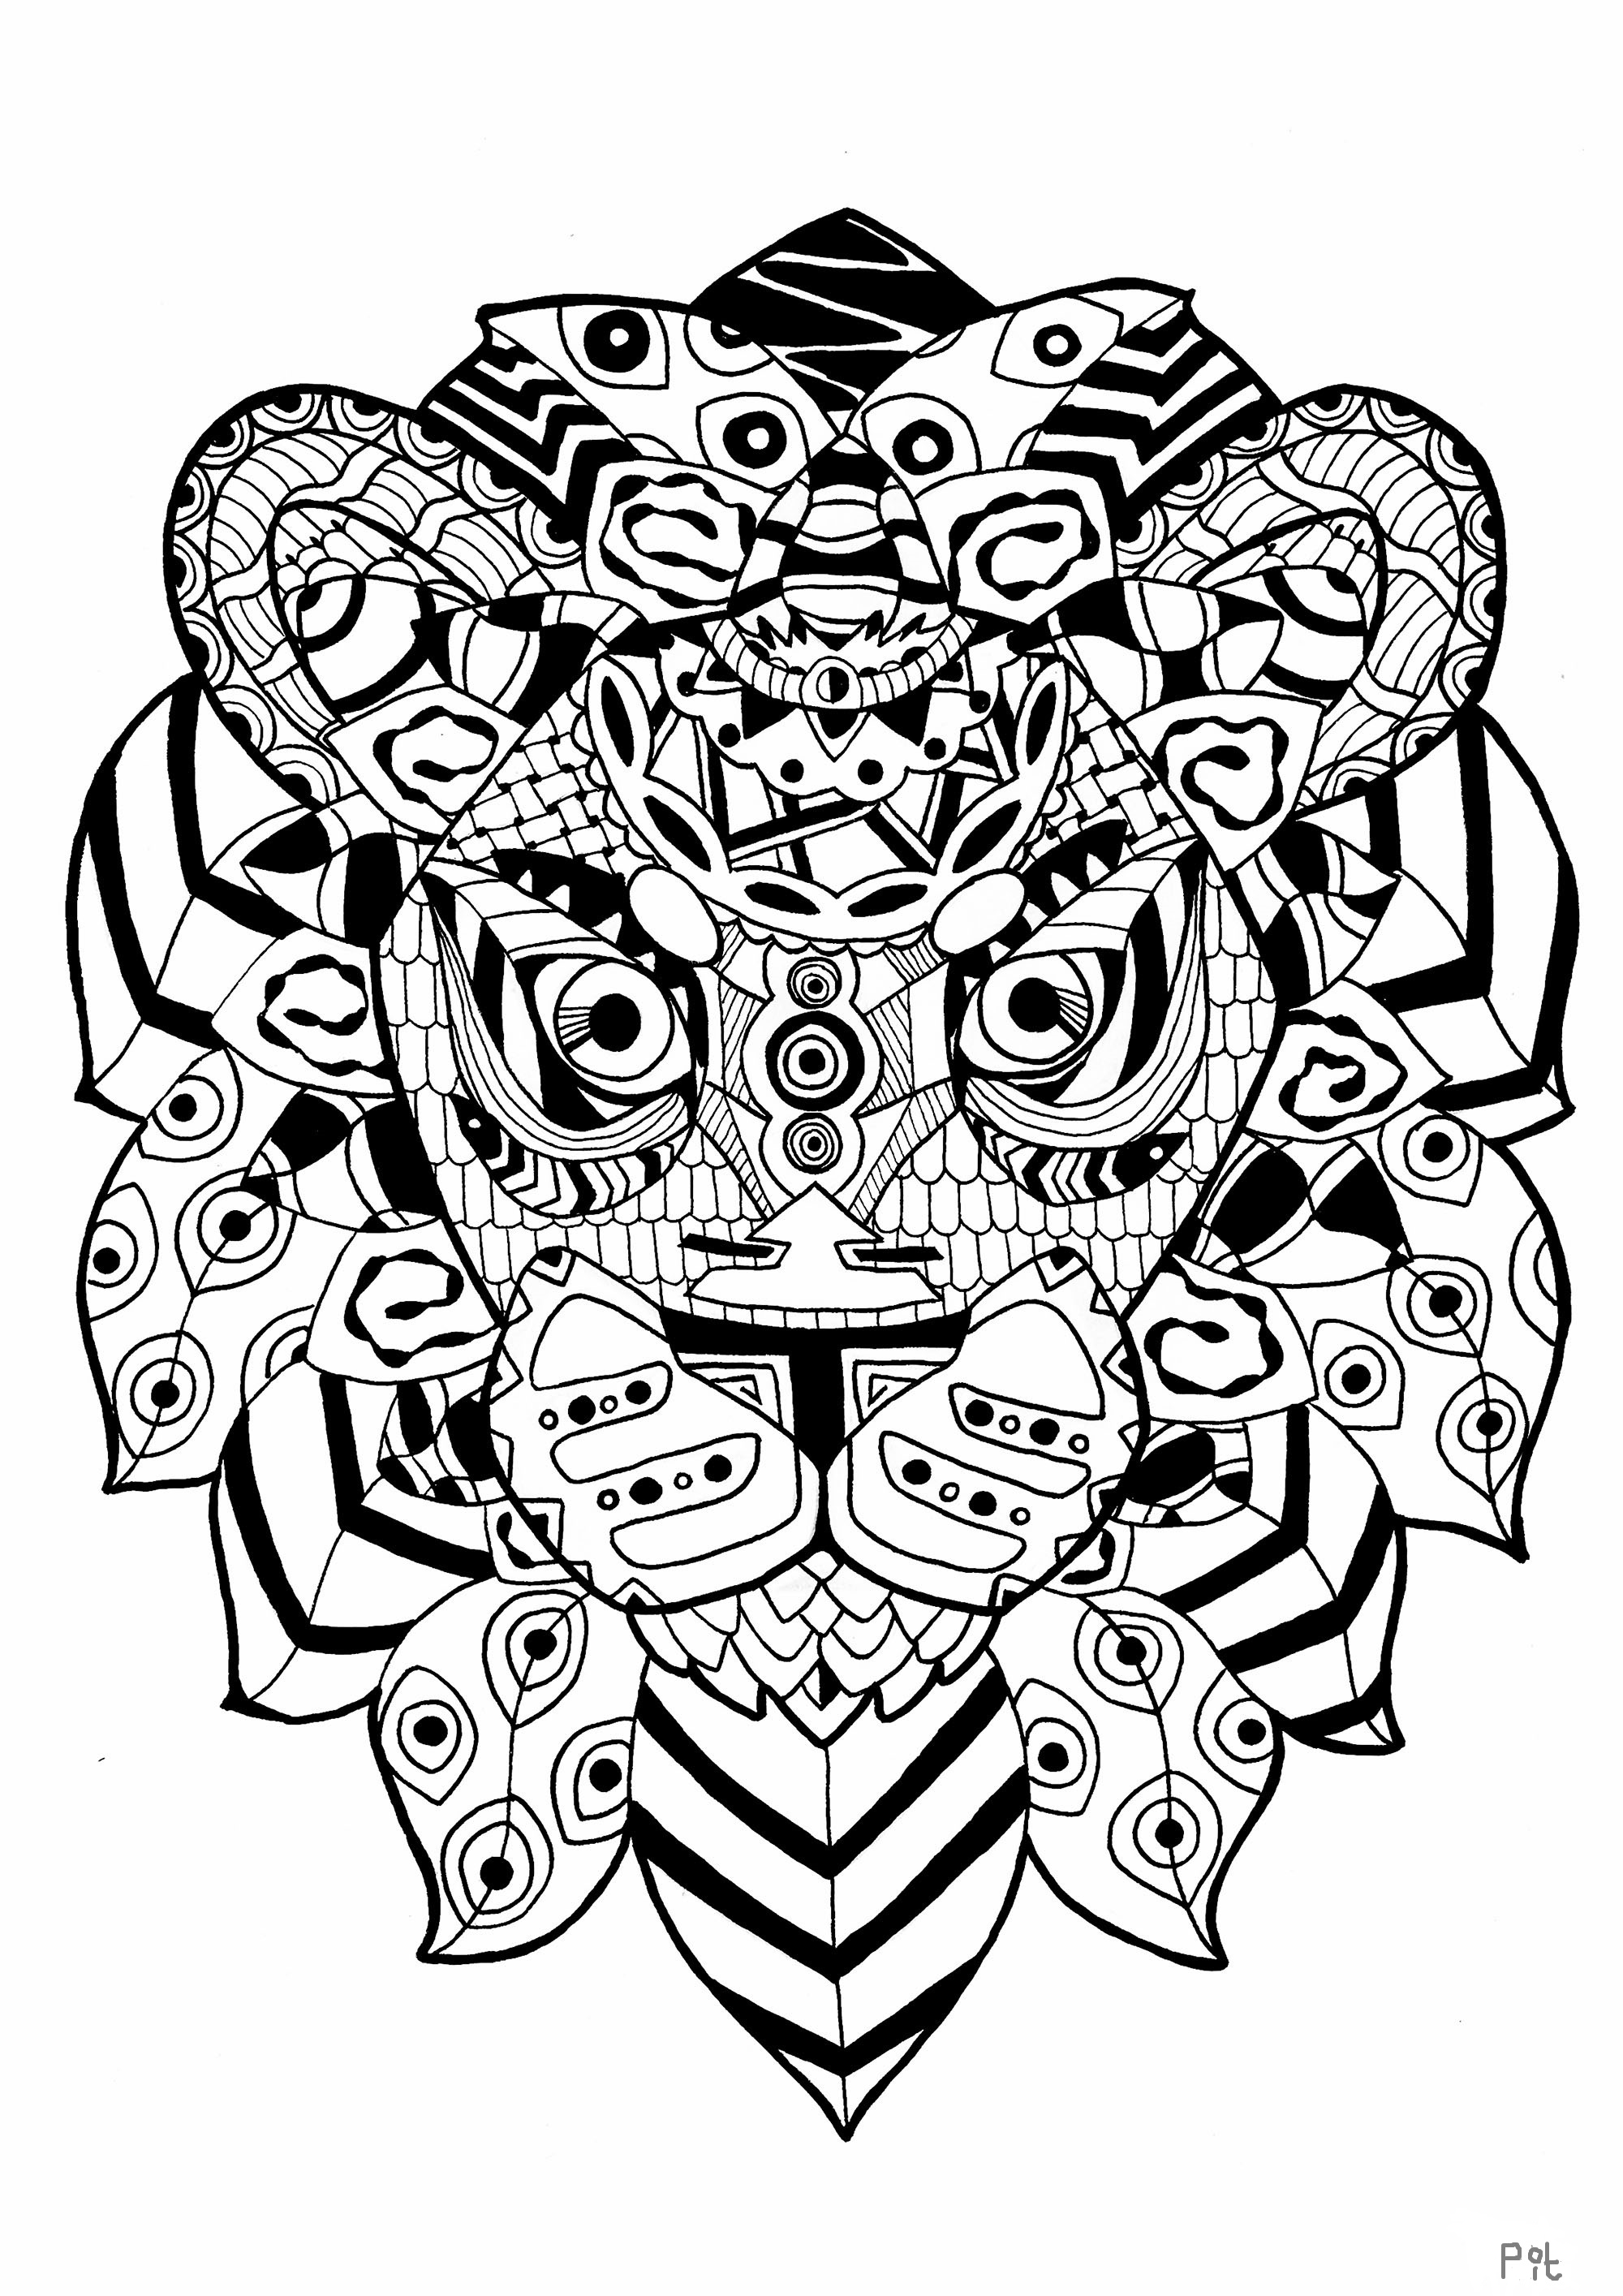 zentangle lion animals coloring pages for adults justcolor. Black Bedroom Furniture Sets. Home Design Ideas